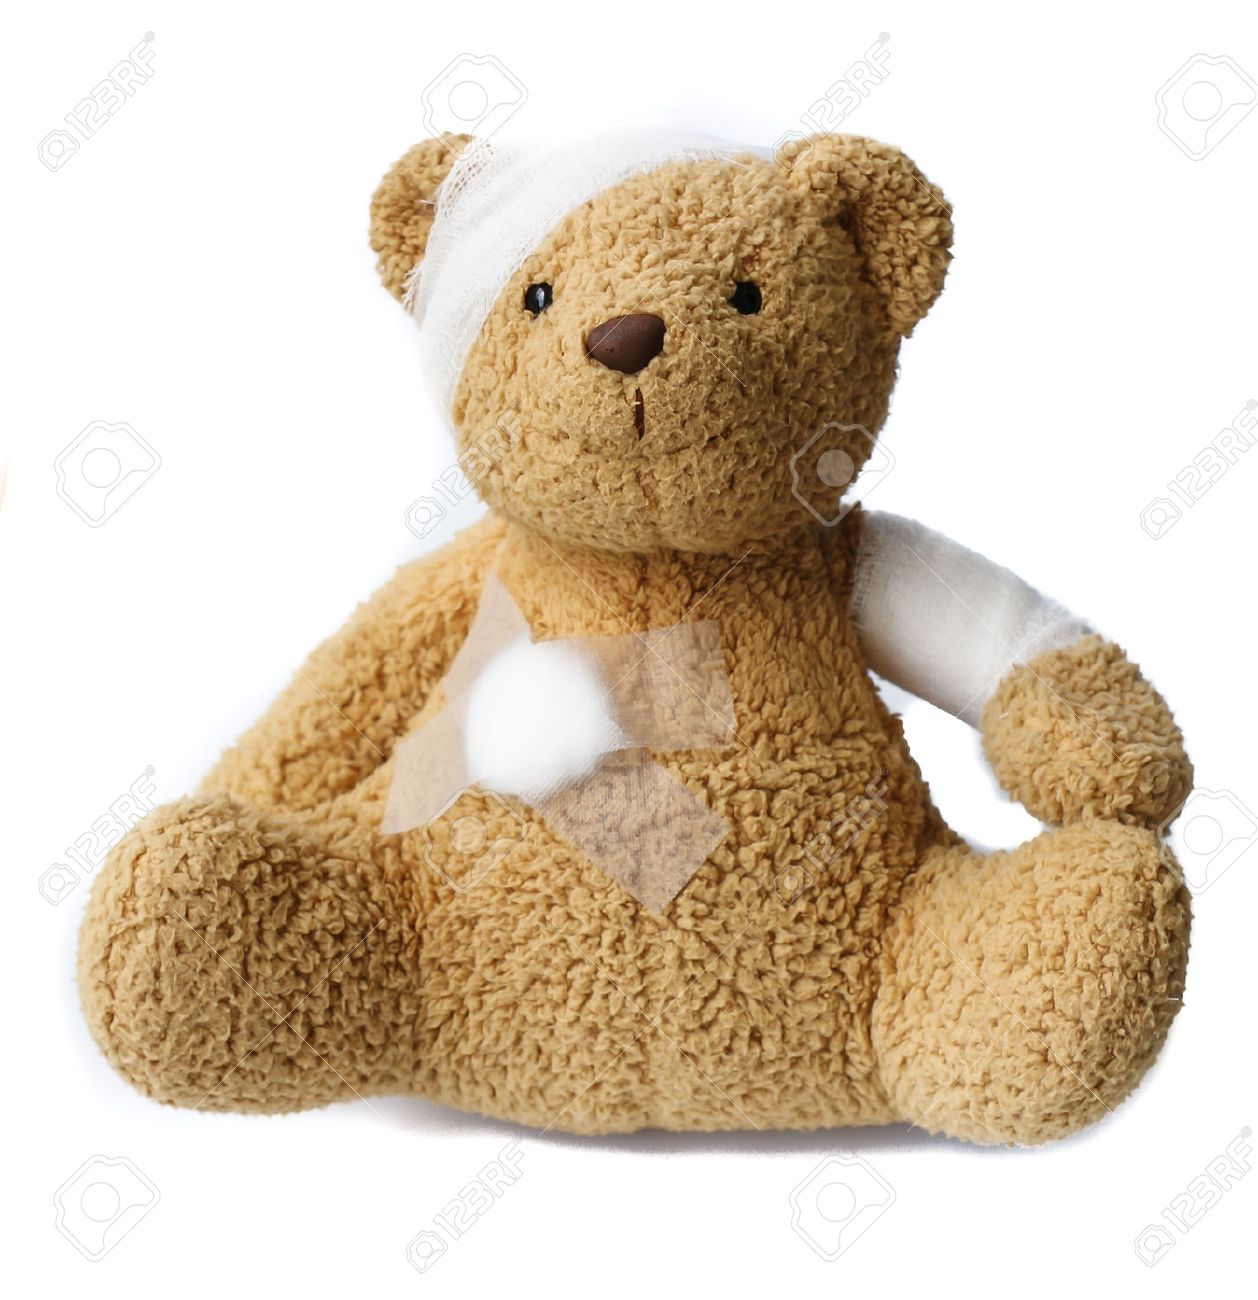 teddy bear with bandaged head on white background Stock Photo - 26667231